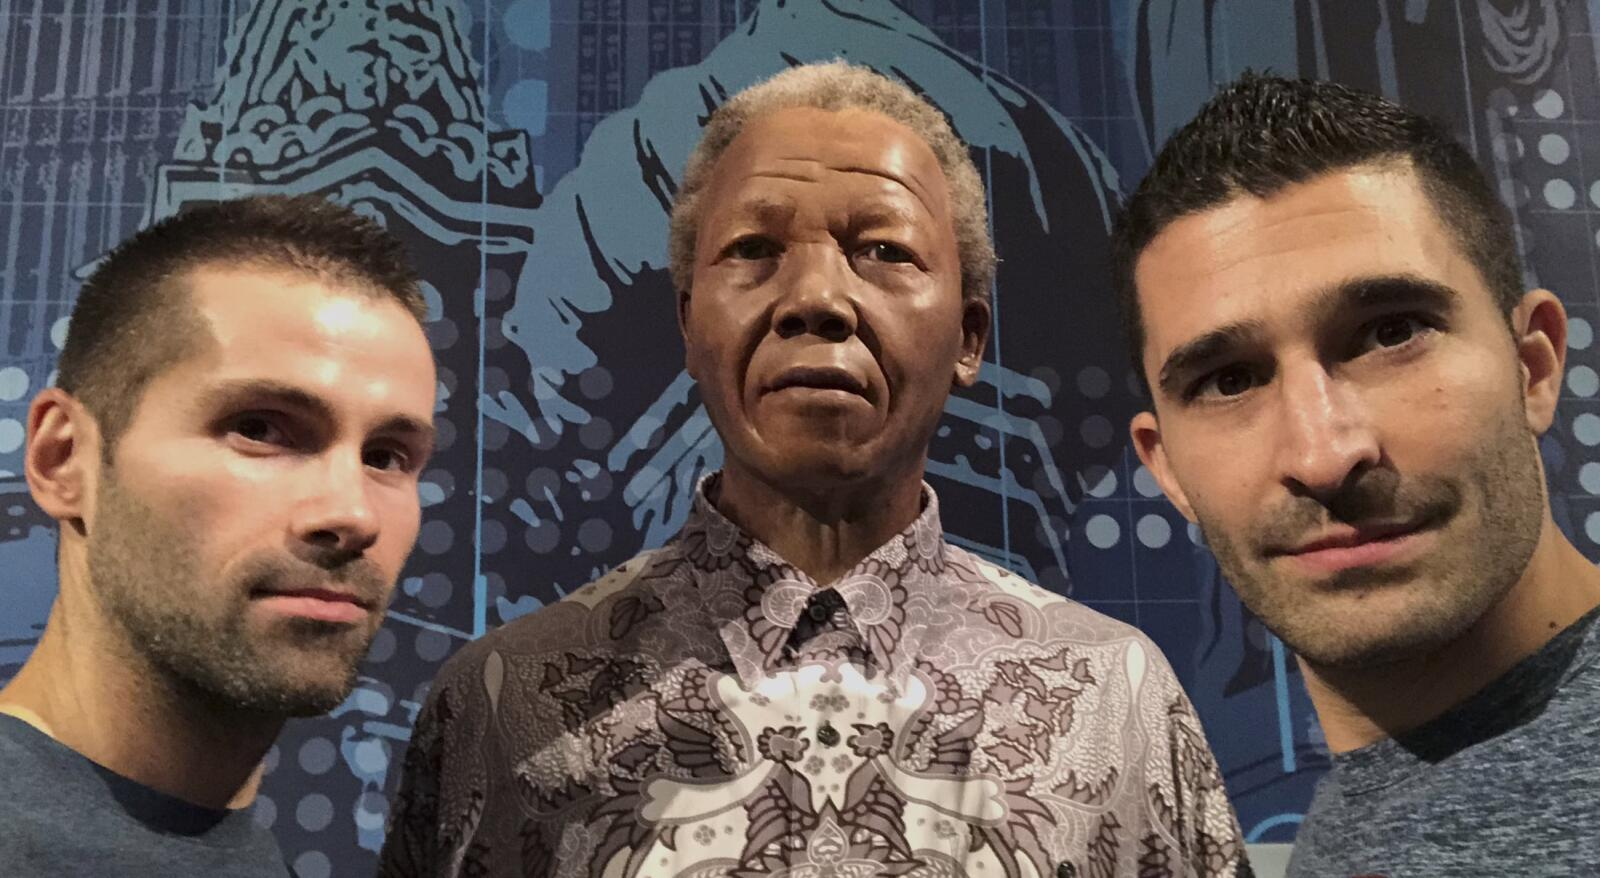 Nelson Mandela gay icon at Madame Tussauds